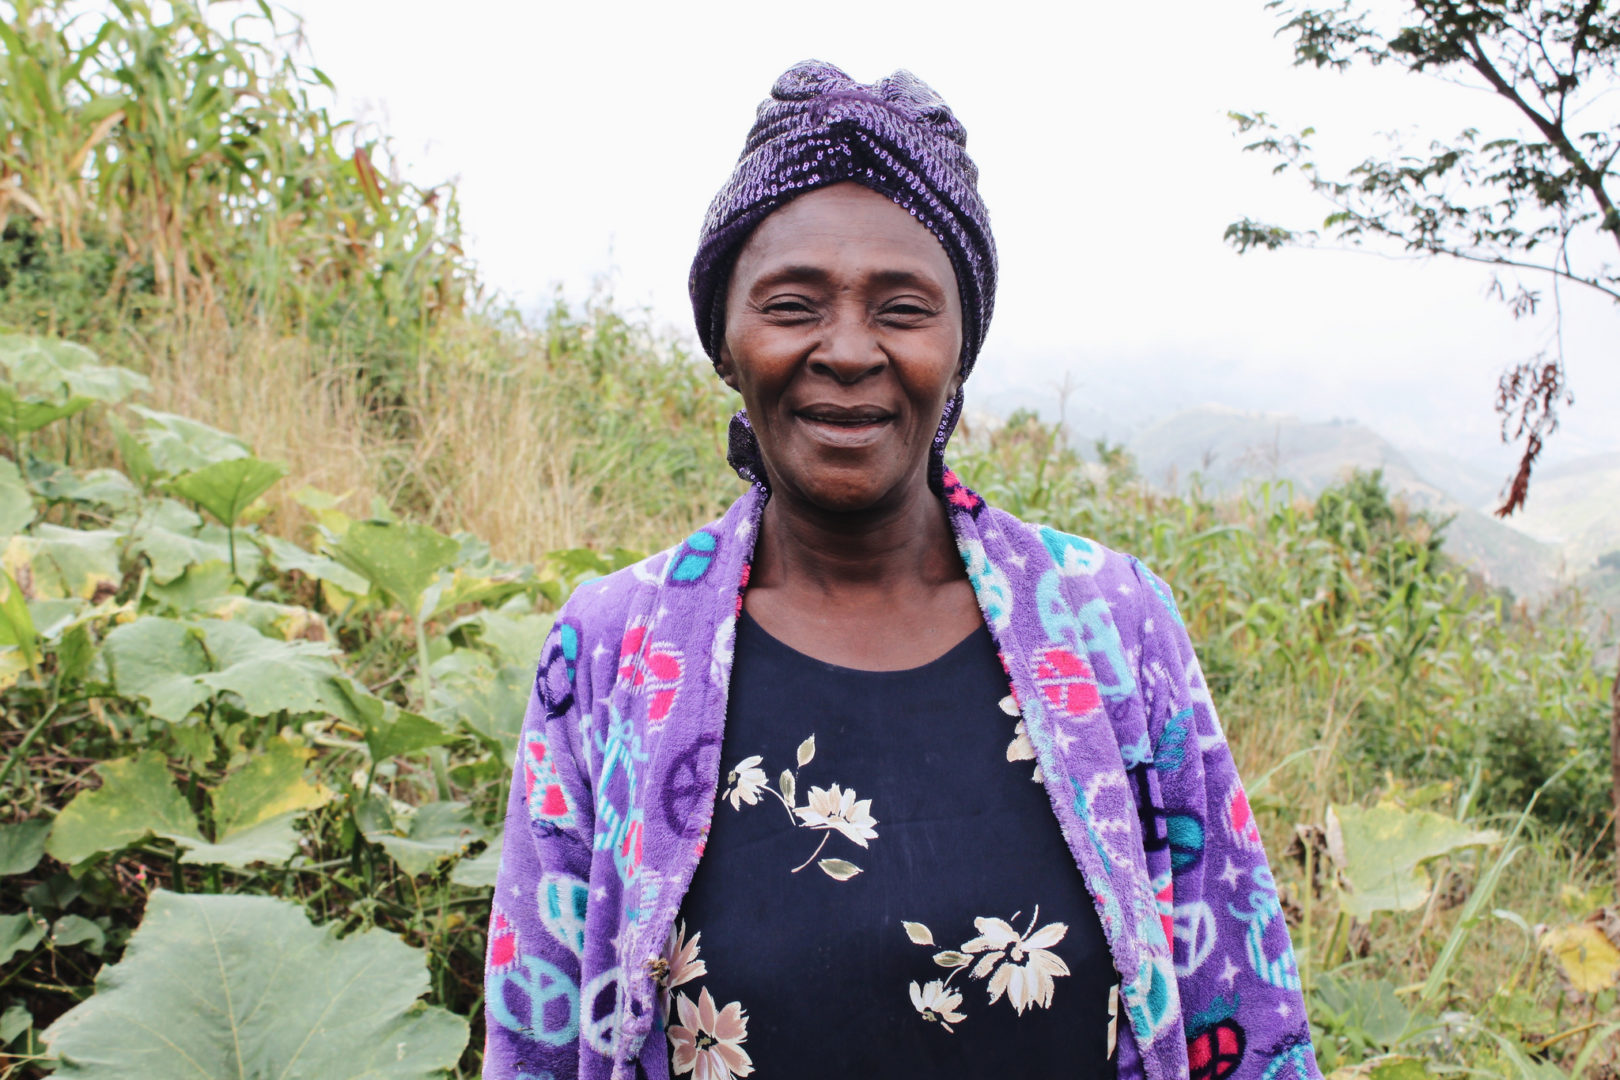 Dieula shares a smile from her farm in Haiti.